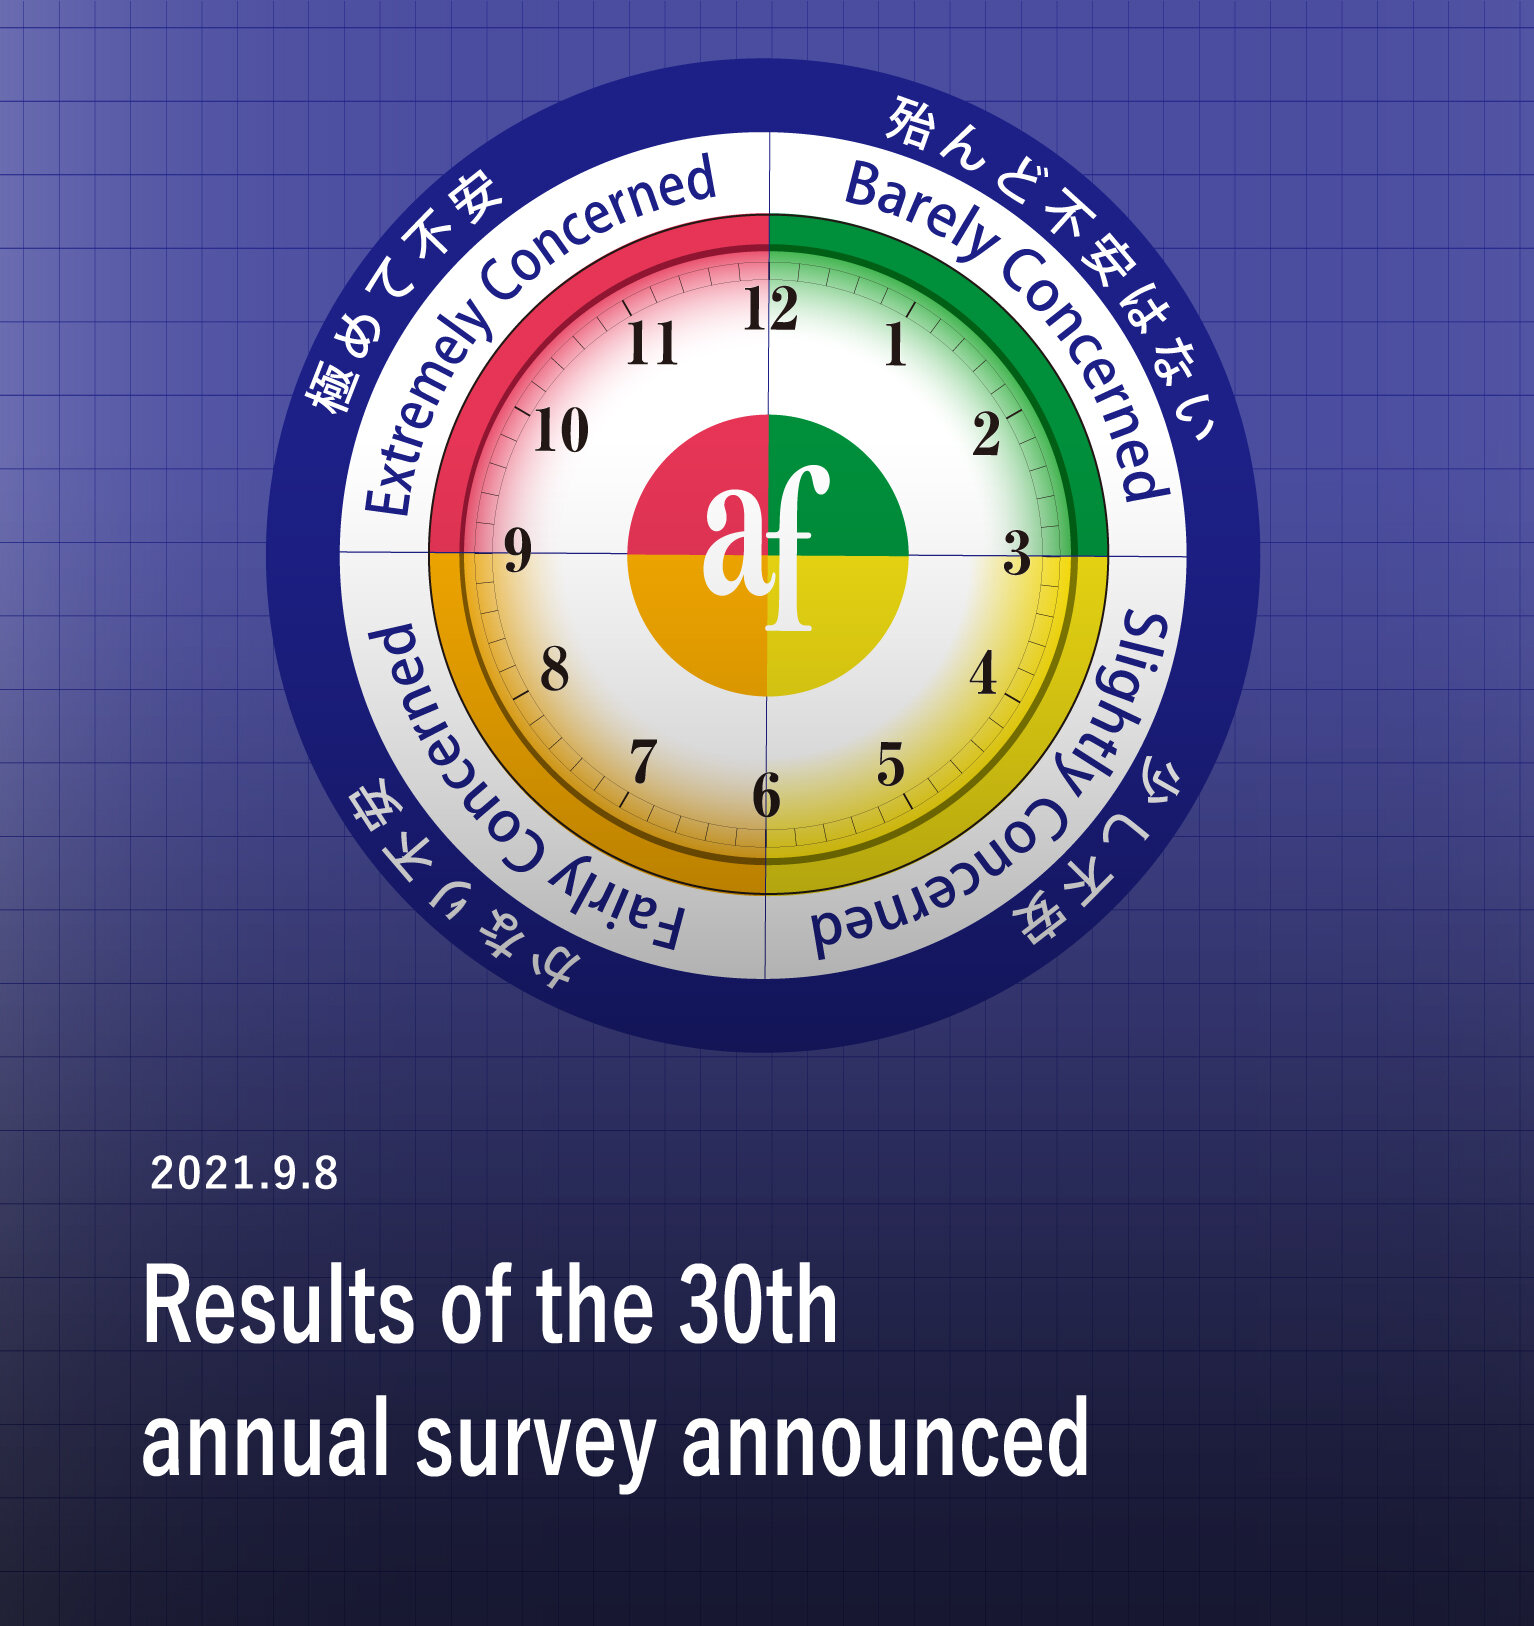 Results of the 30th annual